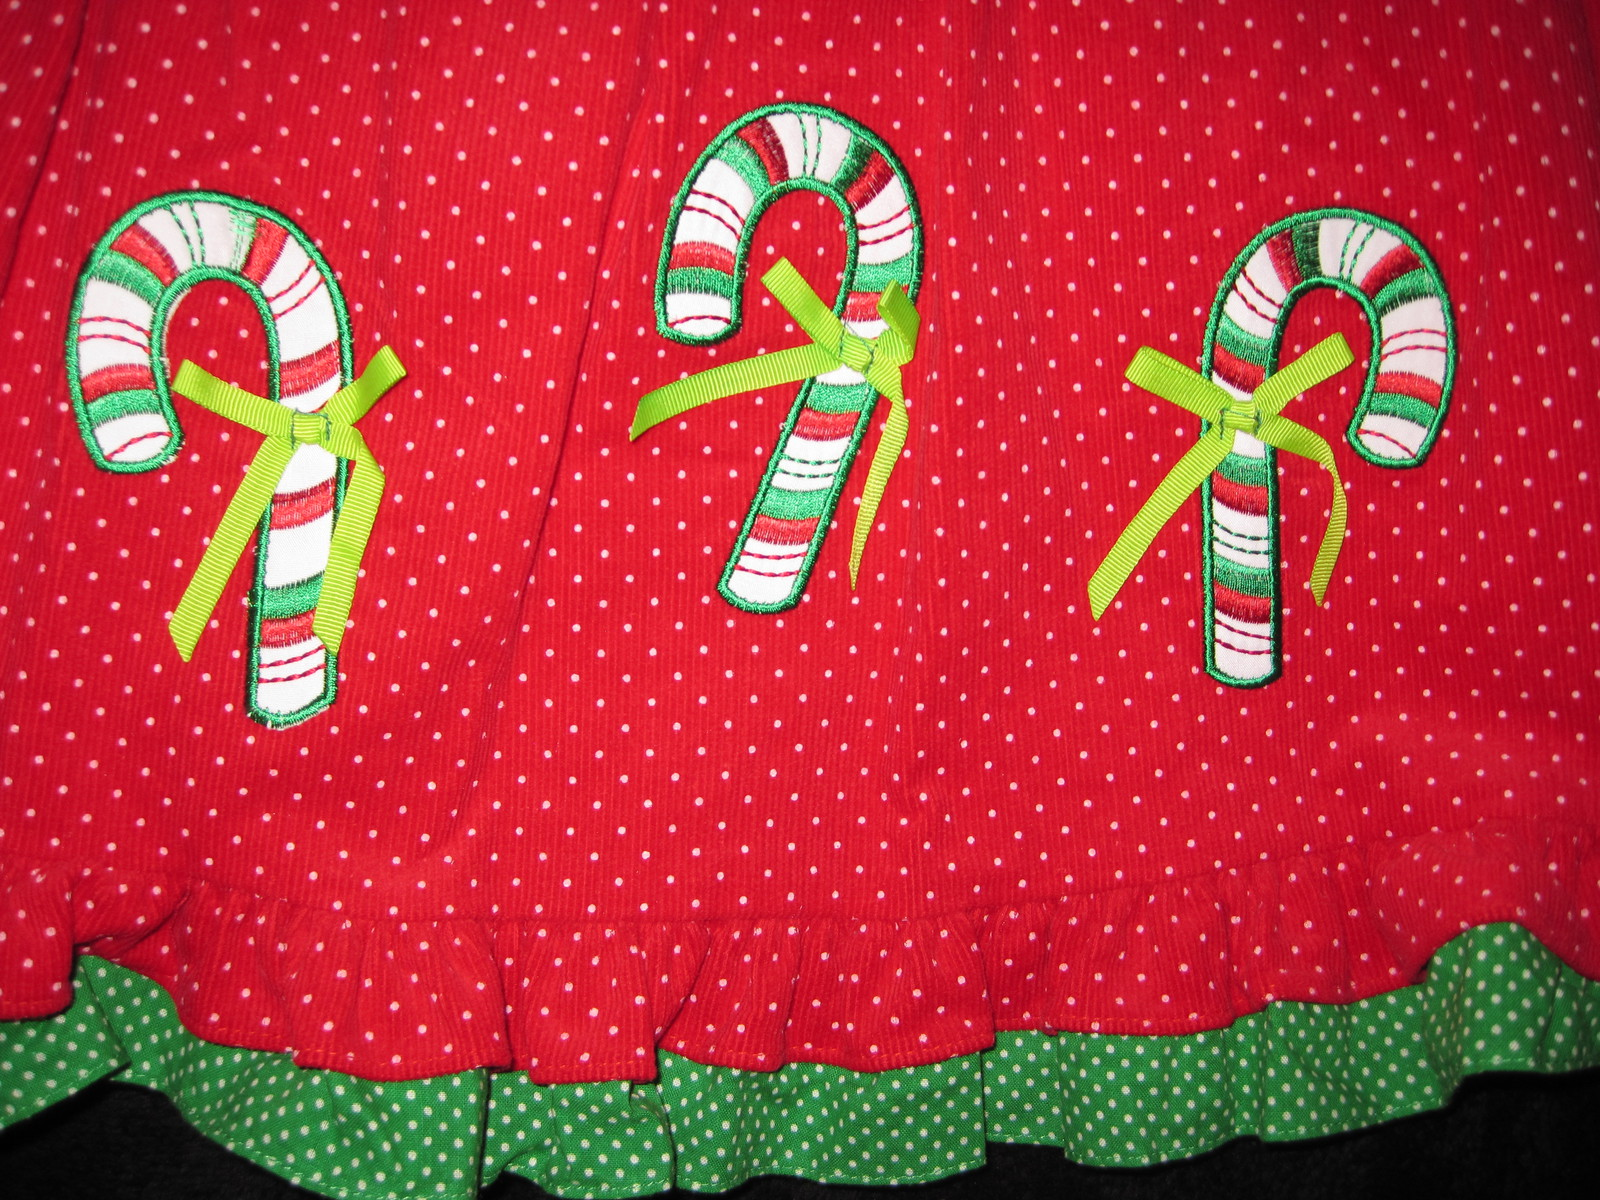 GIRLS 4T - Rare Too -  Candy Canes on Red Corduroy HOLIDAY JUMPER SET image 4